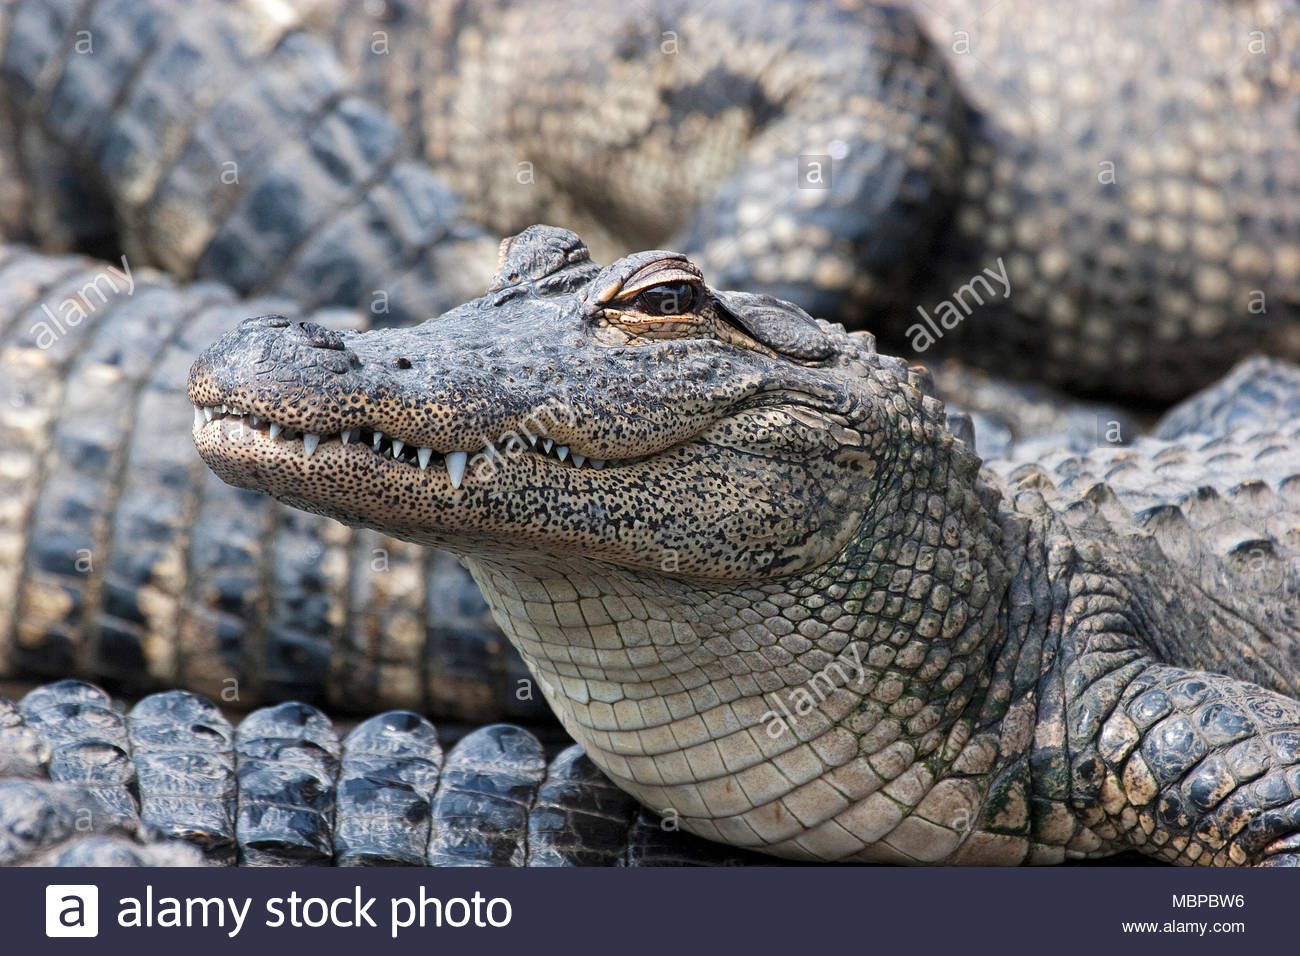 Mississippi alligator (Alligator mississippiensis), group, juvenile, Everglades, Florida, USA - Stock Image